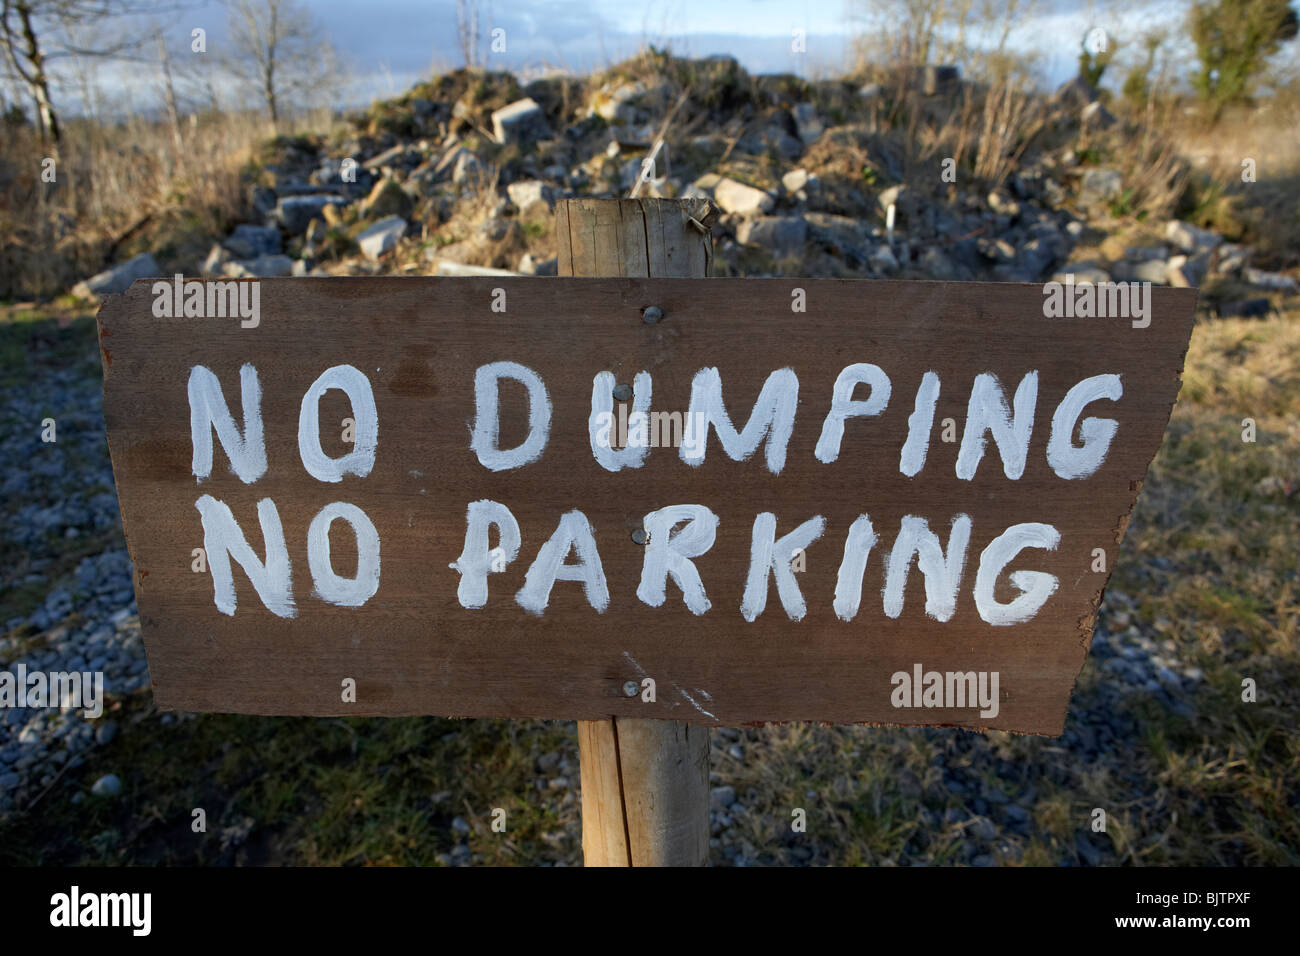 wooden hand painted no dumping no parking sign in county sligo republic of ireland - Stock Image